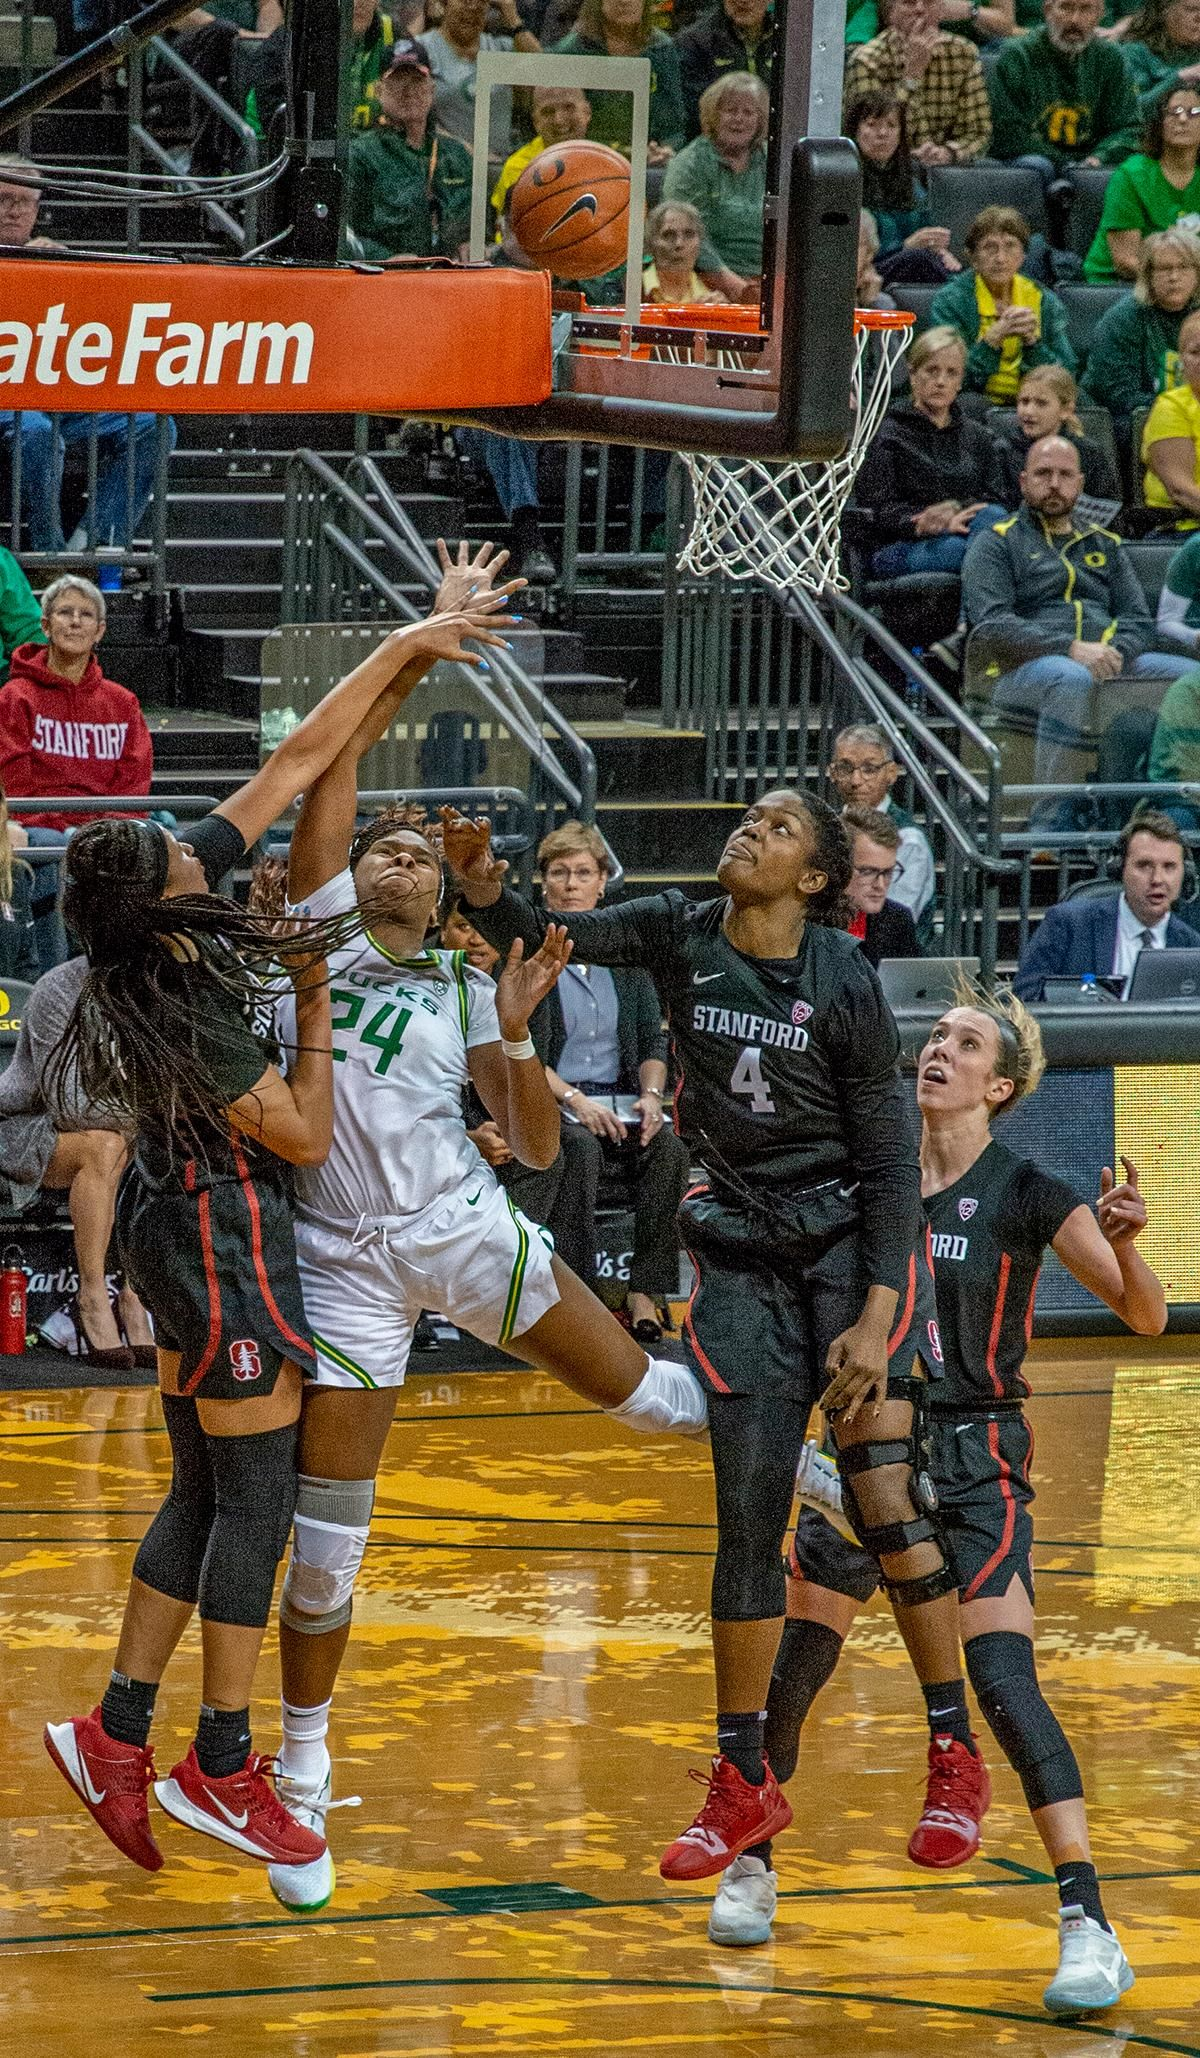 Oregon's forward Ruthy Hebard, #24, runs into heavy traffic by Stanford's guard Hannah Jump, #30, and forward Nadia Fingall, #4, while going in for a layup. The #6 University of Oregon Ducks women's basketball team defeated #3 Stanford Cardinal 87-55 in front of a sold out crowd of 12, 218 fans in Matthew Knight Arena. Sabrina Ionescu broke the all-time Oregon scoring record of 2,253 and ended the game with 37 points, 11 rebounds, another double-double. Satou Sabally added 18 points and 11 rebounds, also a double-double. Ruthy Hebard put up 11 points with 5 rebounds, and Minyon Moore added 10 points 3 rebounds. The Ducks next face off against Cal on Sunday, January 19, at 2 pm in Matthew Knight Arena. Photo by Jeffrey Price